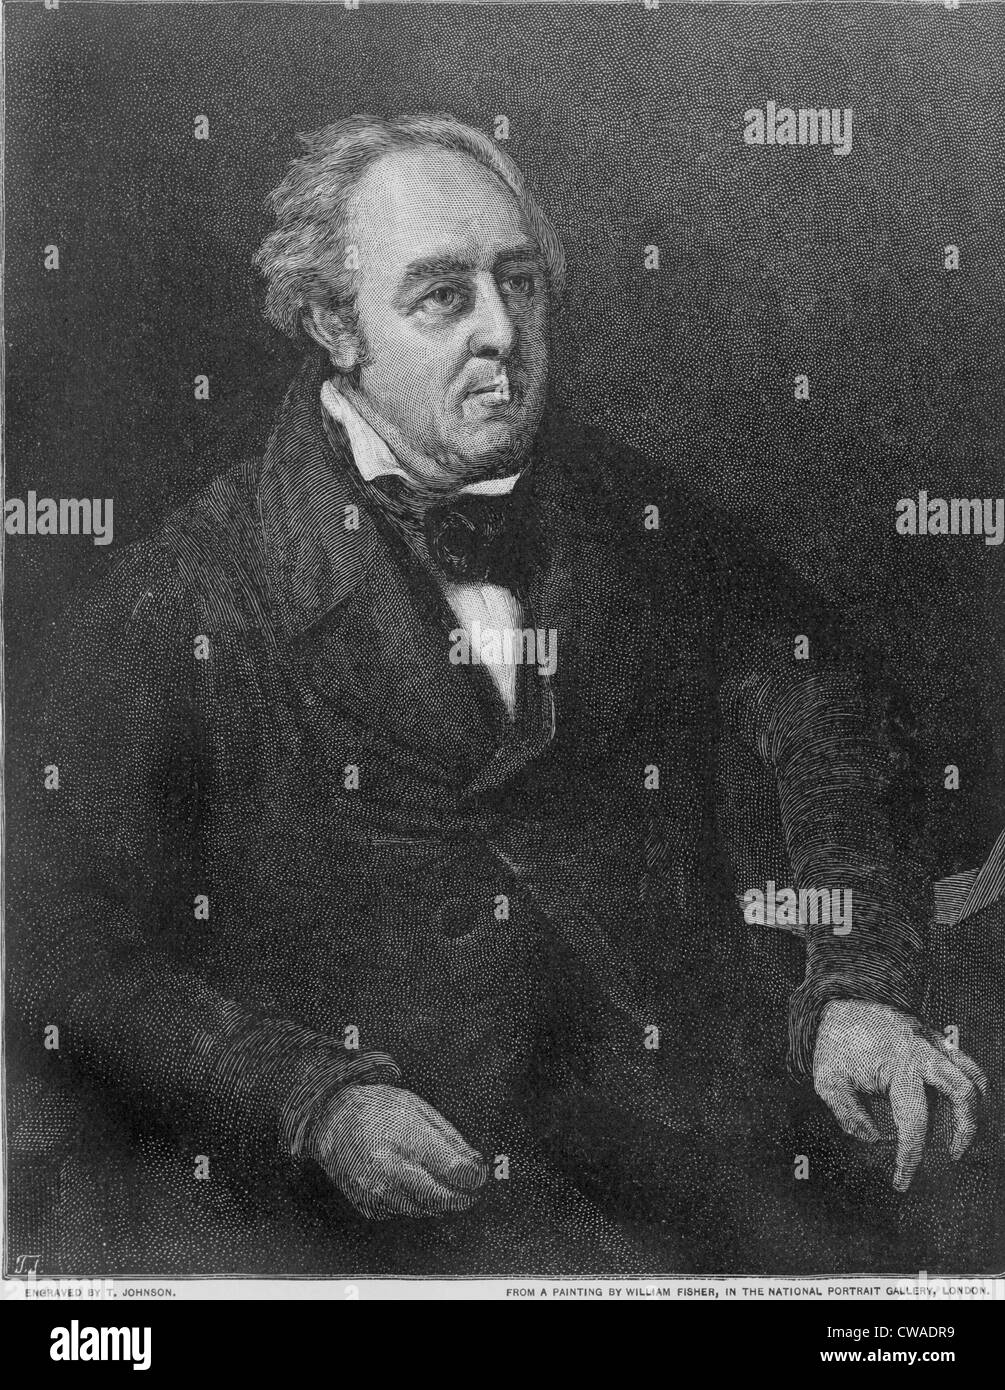 Walter Savage Landor (1775-1864) English writer of IMAGINARY CONVERSATIONS, dialogues between historical figures. - Stock Image